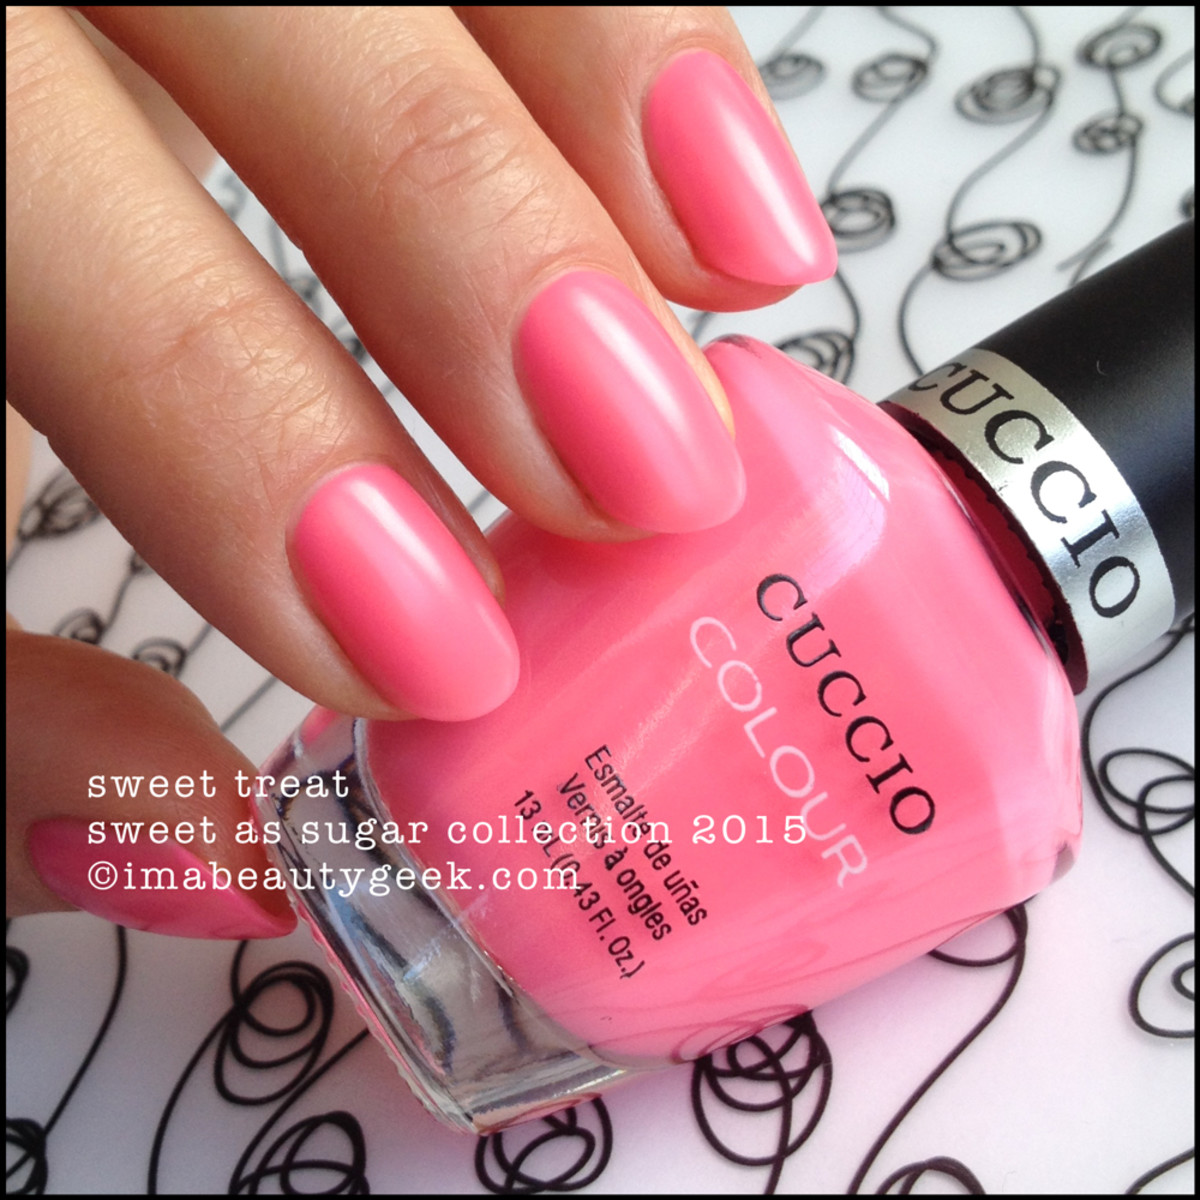 Cuccio Colour Nail Polish Sweet Treat Sweet as Sugar Collection 2015